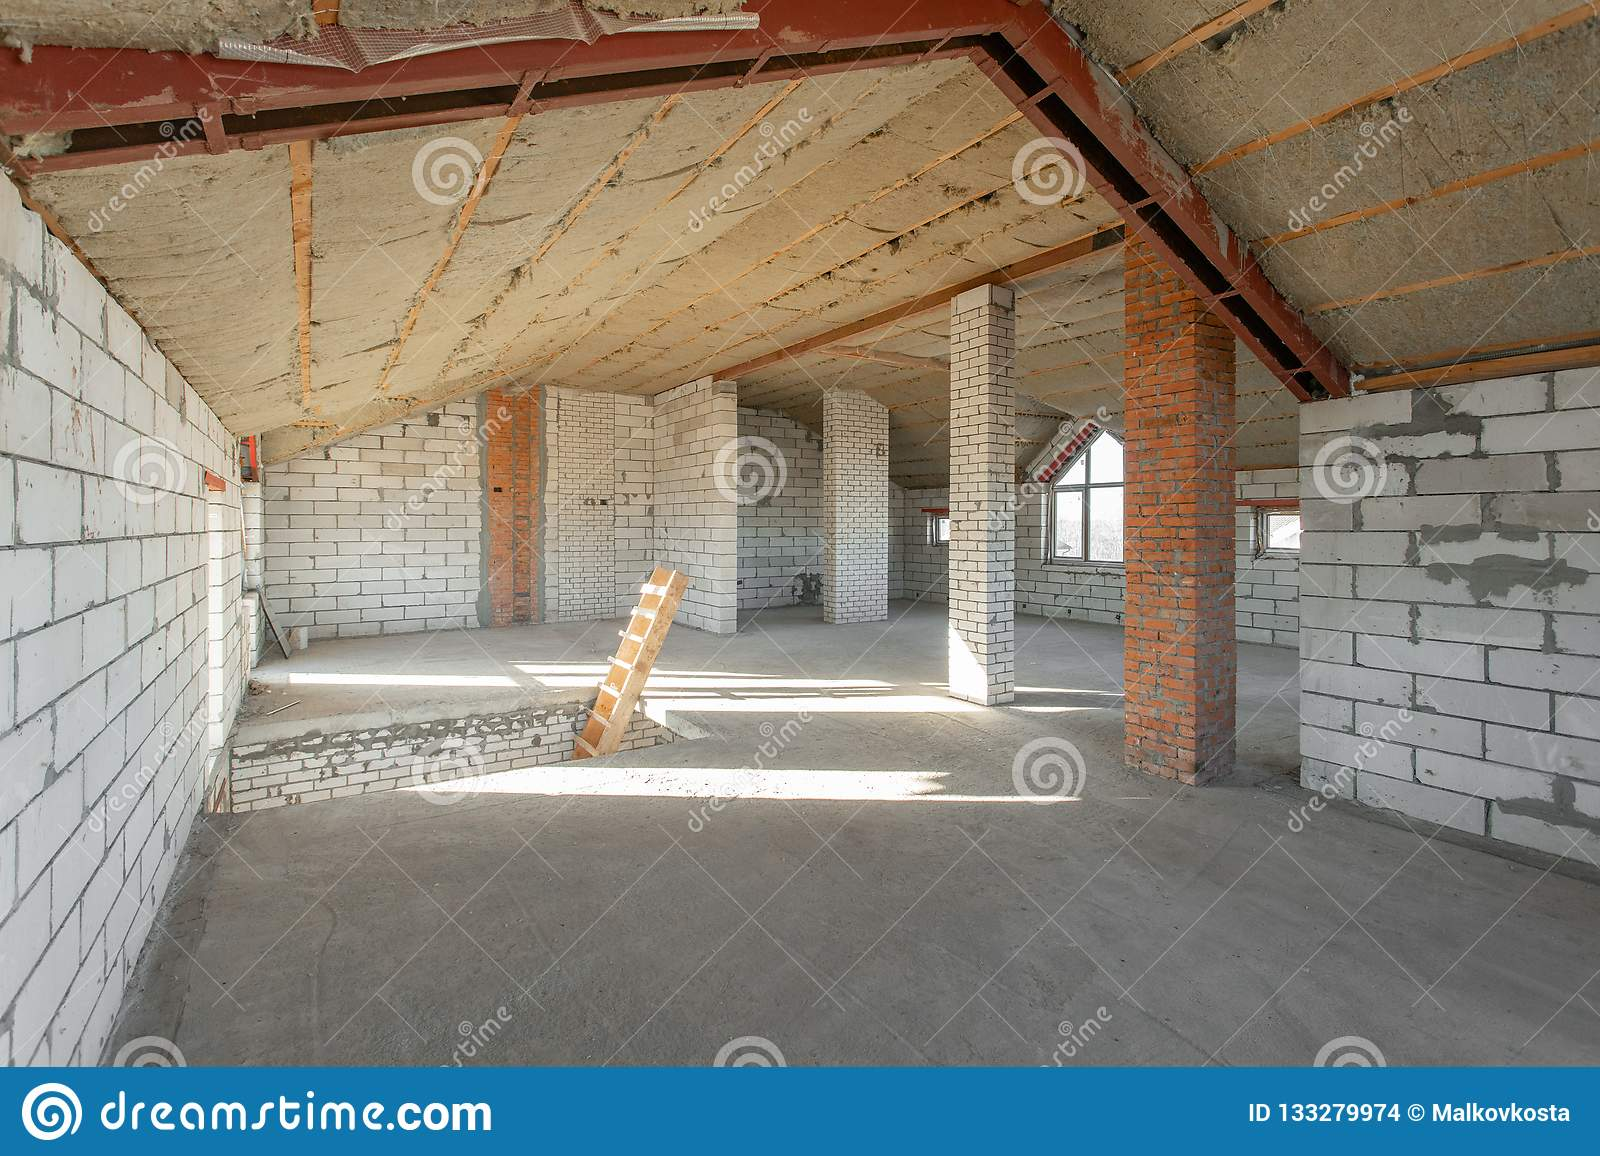 Attic floor of the house. overhaul and reconstruction. Working process of warming inside part of roof. House or